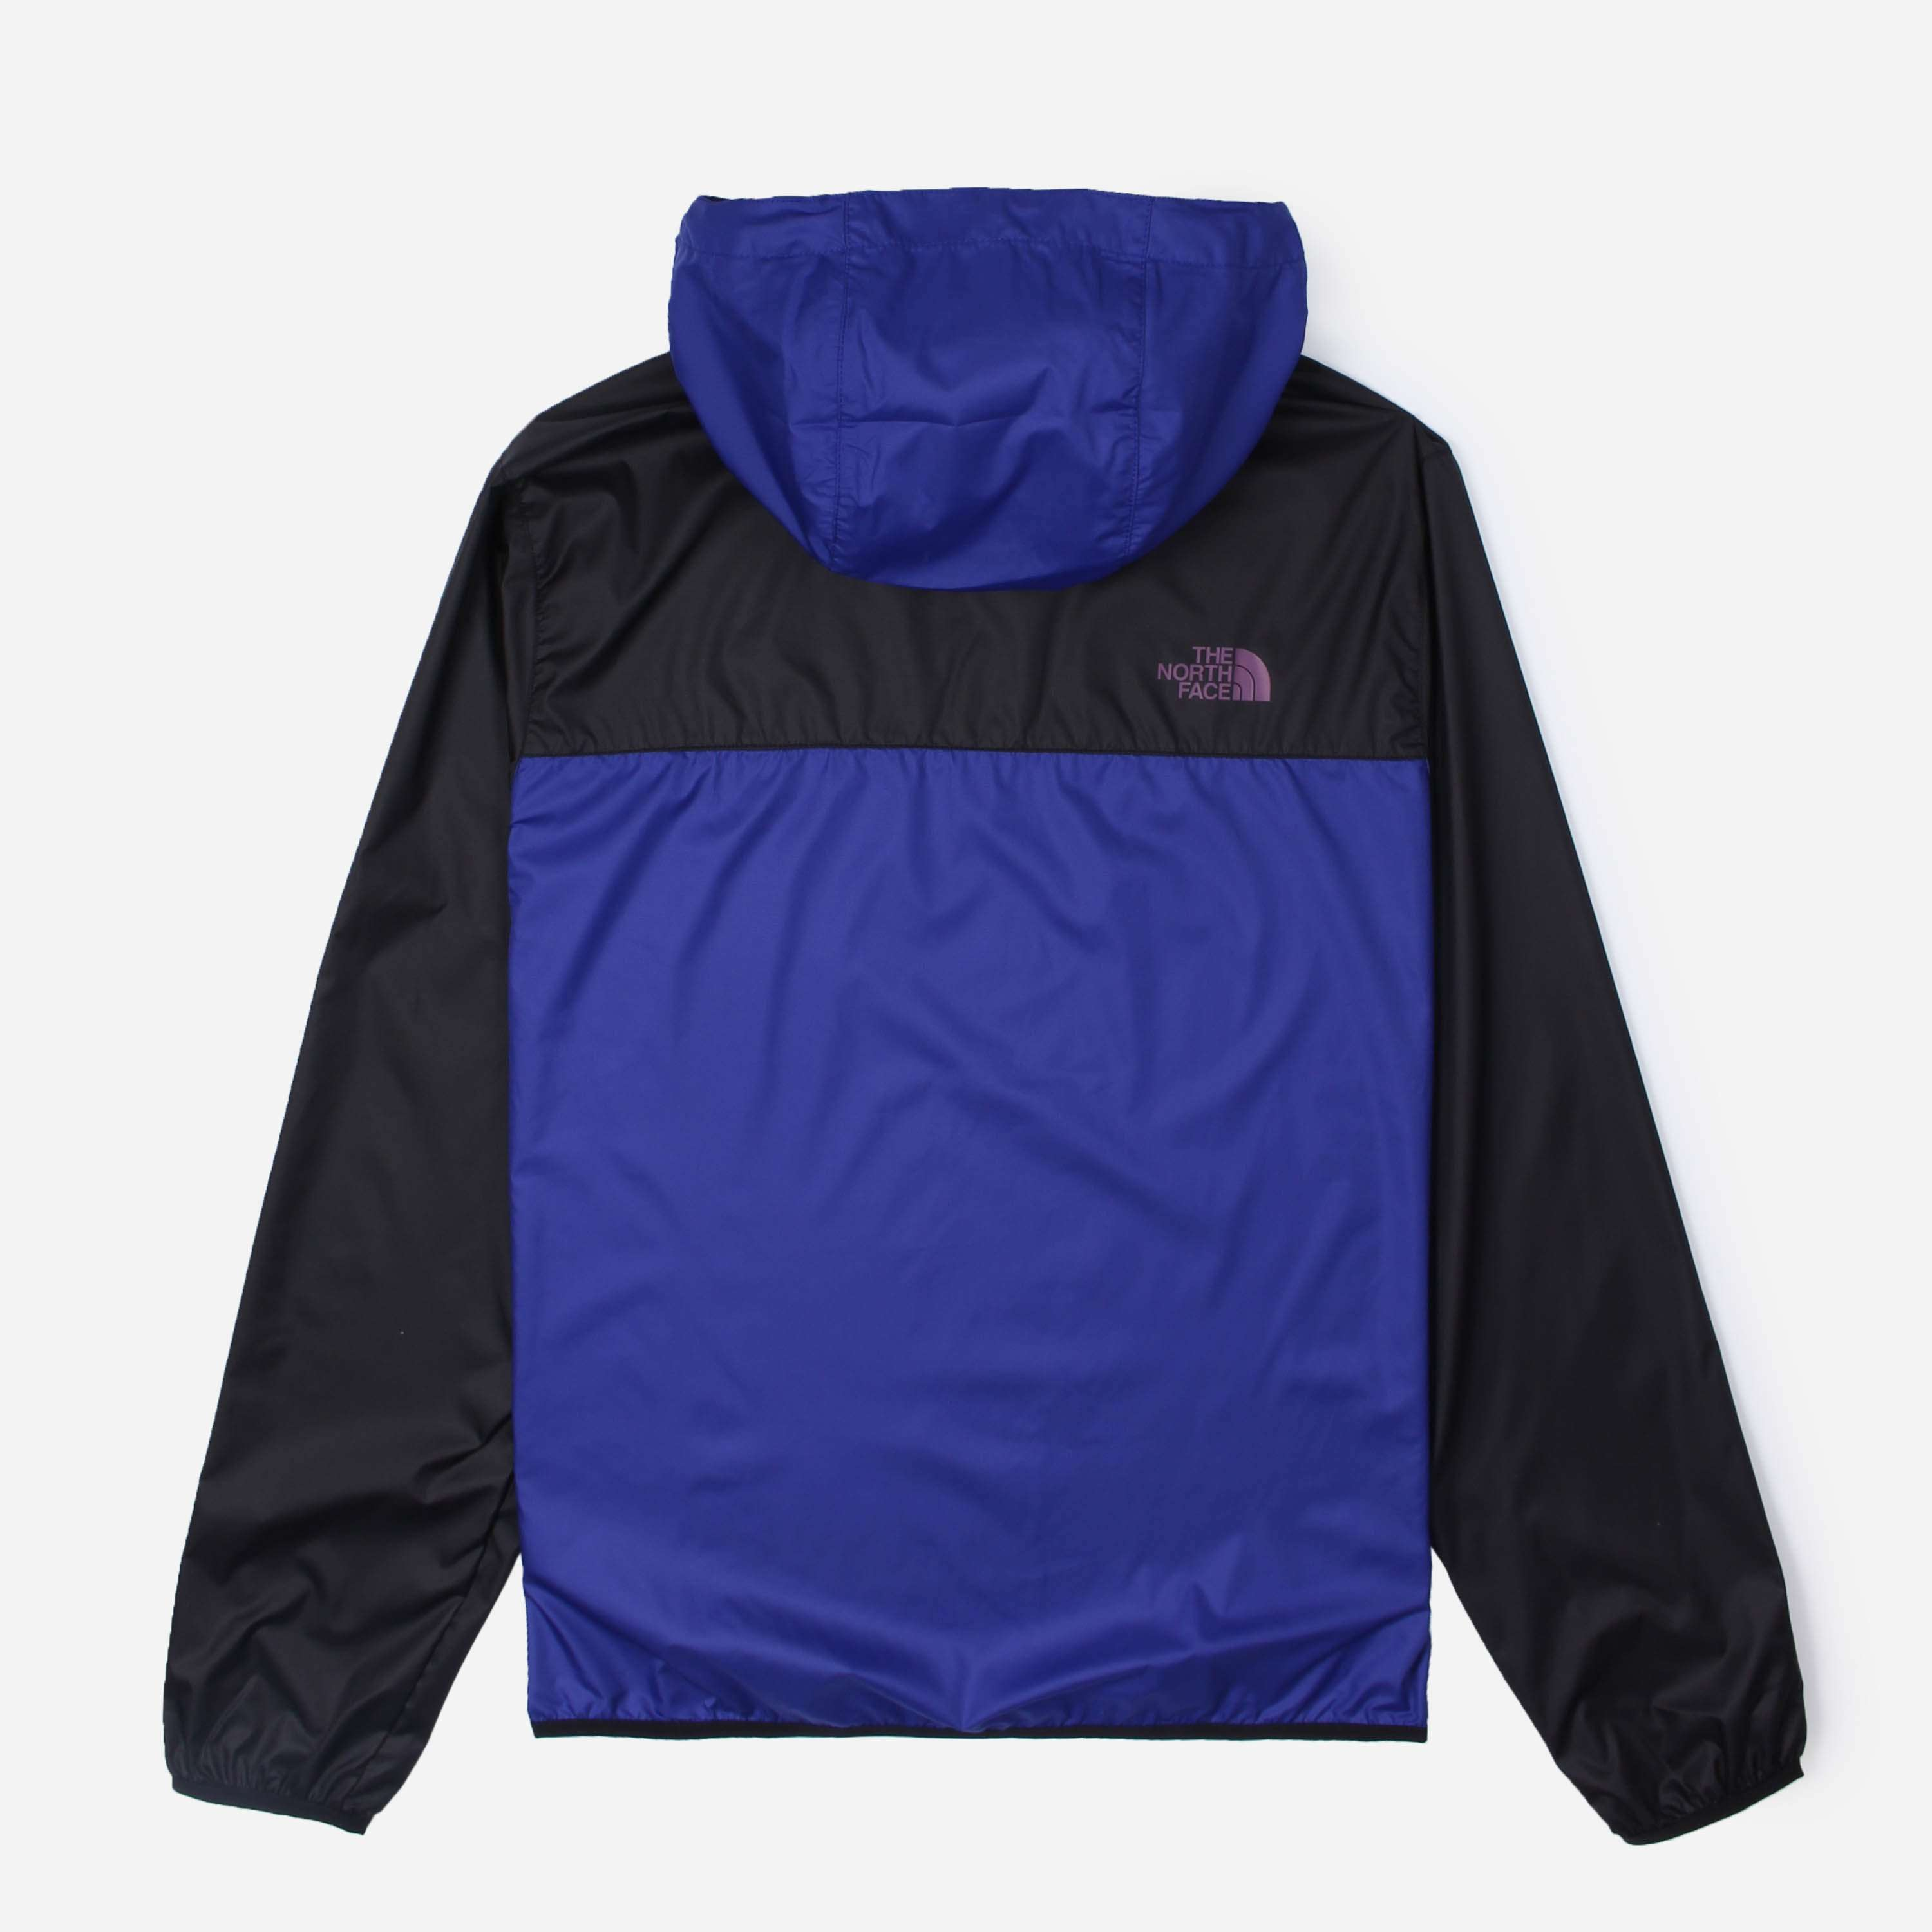 The North Face Rage '92 Cyclone 2.0 Jacket